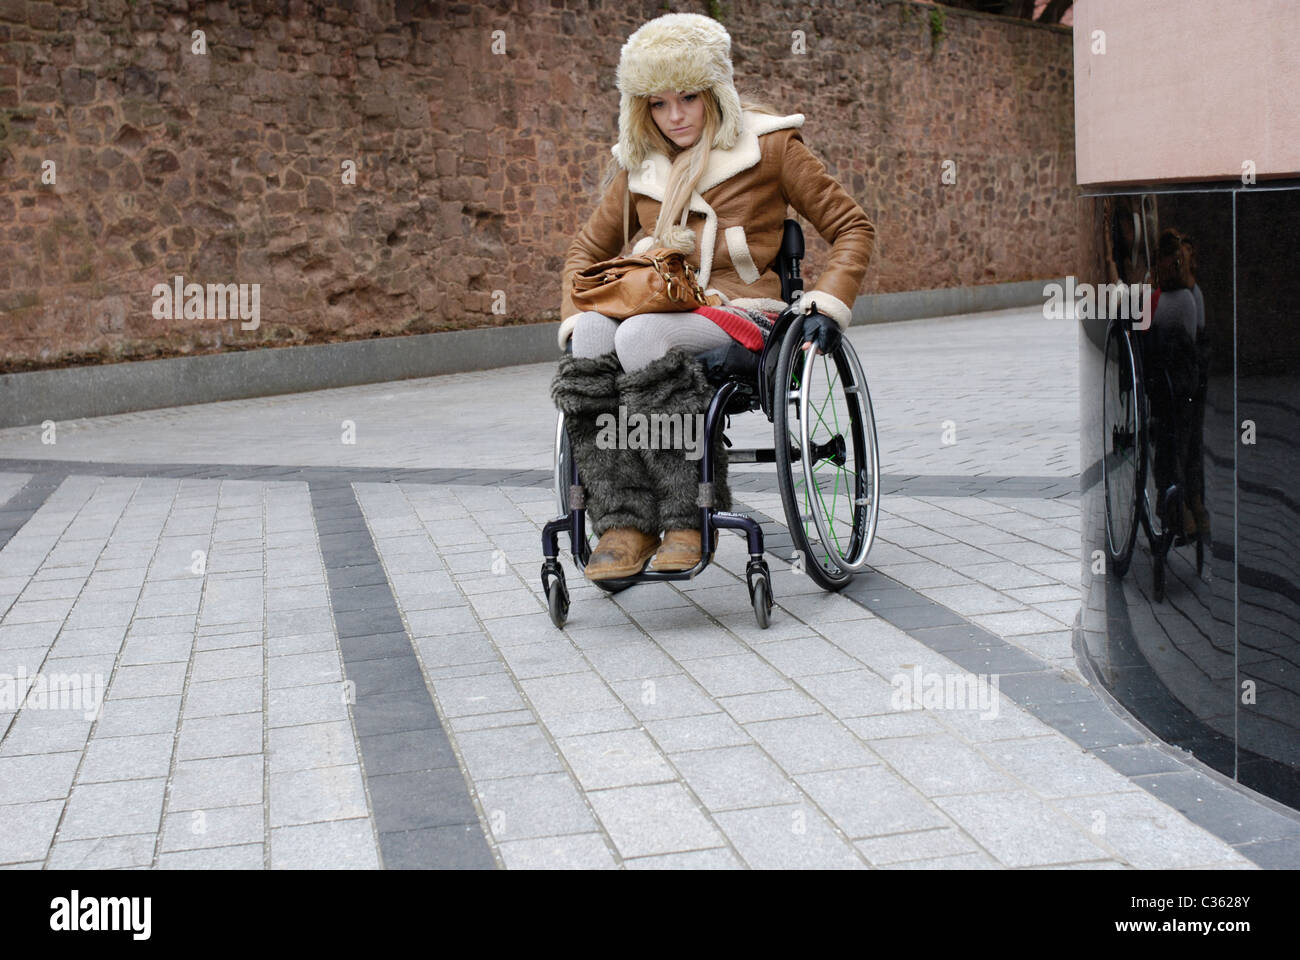 Young woman with the condition Friedreich's Ataxia using a wheelchair. - Stock Image